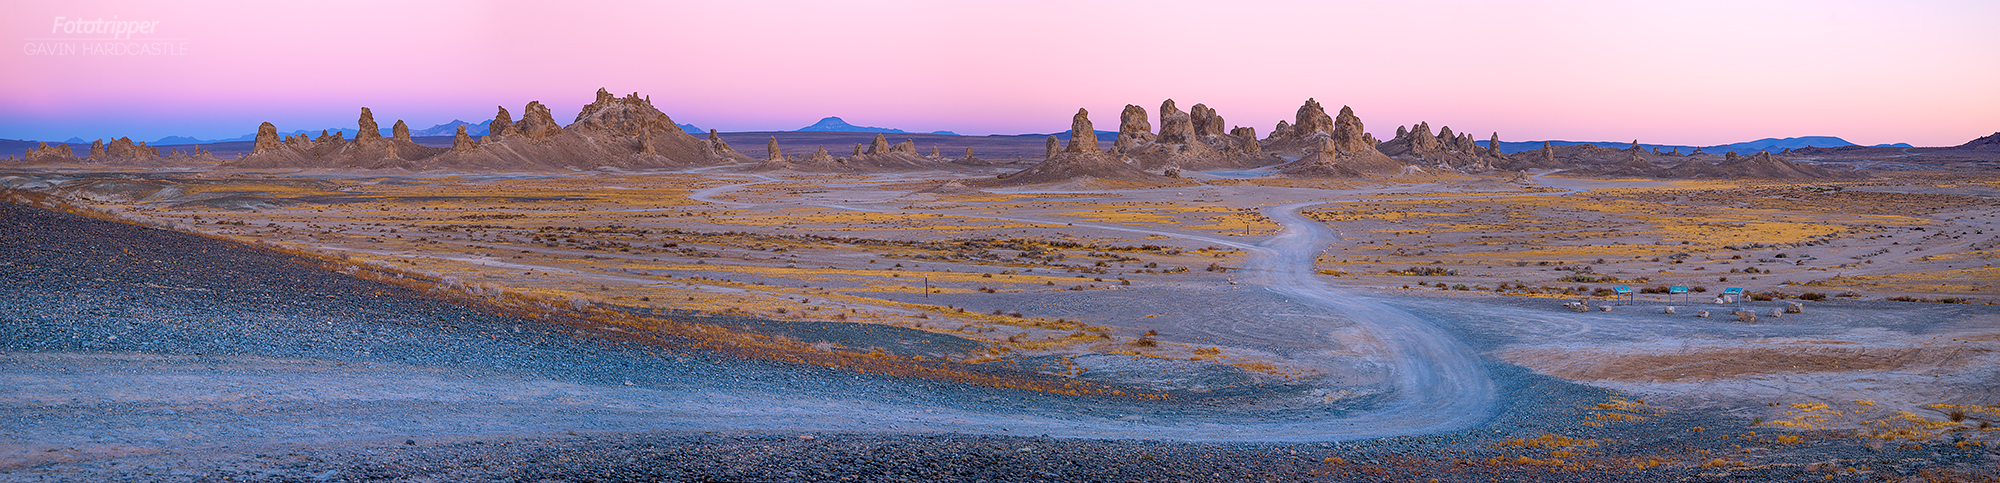 The Trona Pinnacles - Landscape Photography